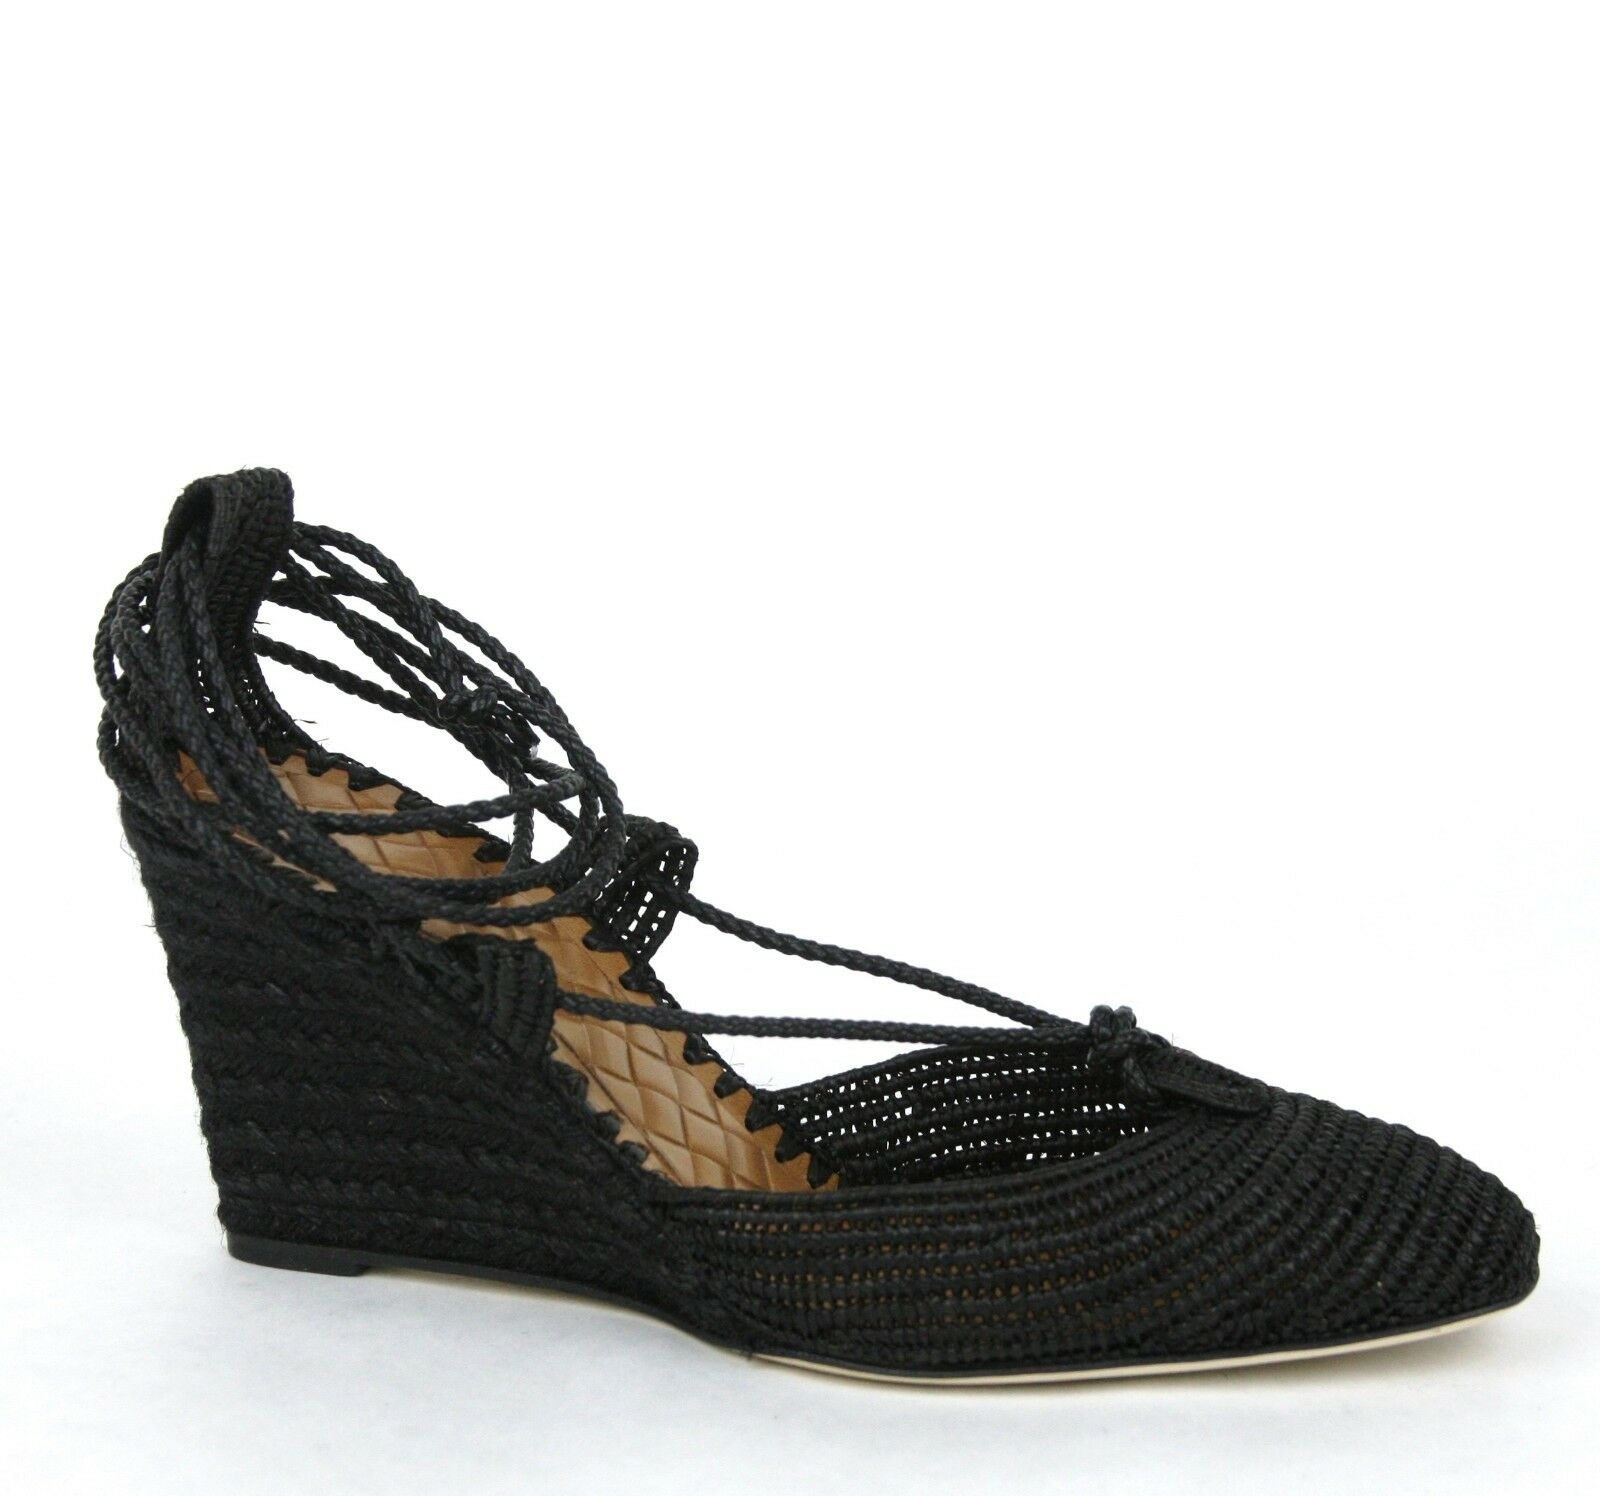 840 New Bottega Veneta Straw Wedge Sandal w Ankle String Black 337829 1000